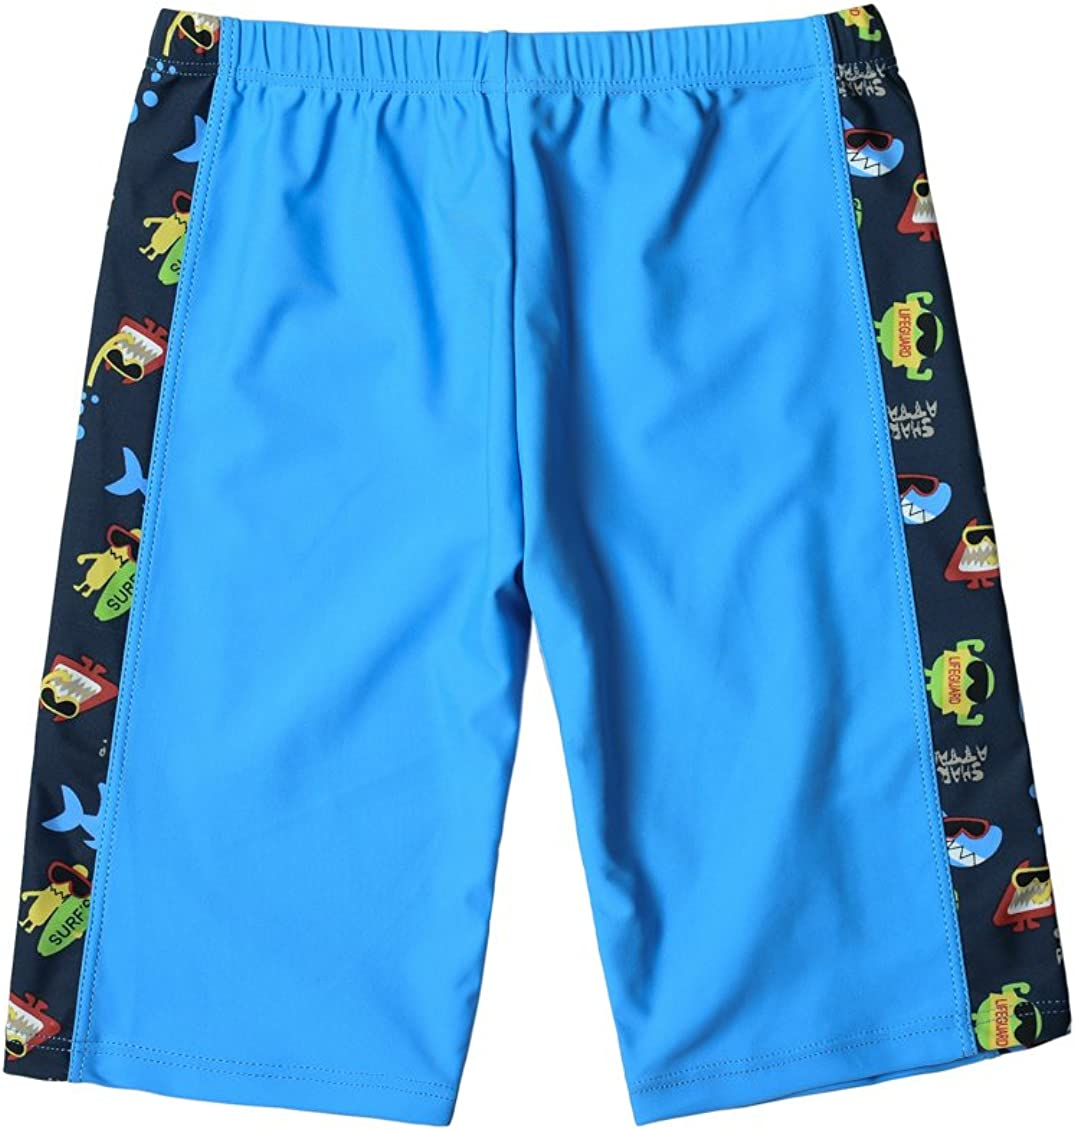 WESIZAR Boys Swimming Shorts UPF 50 Quick Dry Swimming Trunks Nylon Sun Protection Jammer for 6-8 Years Camouflage Blue